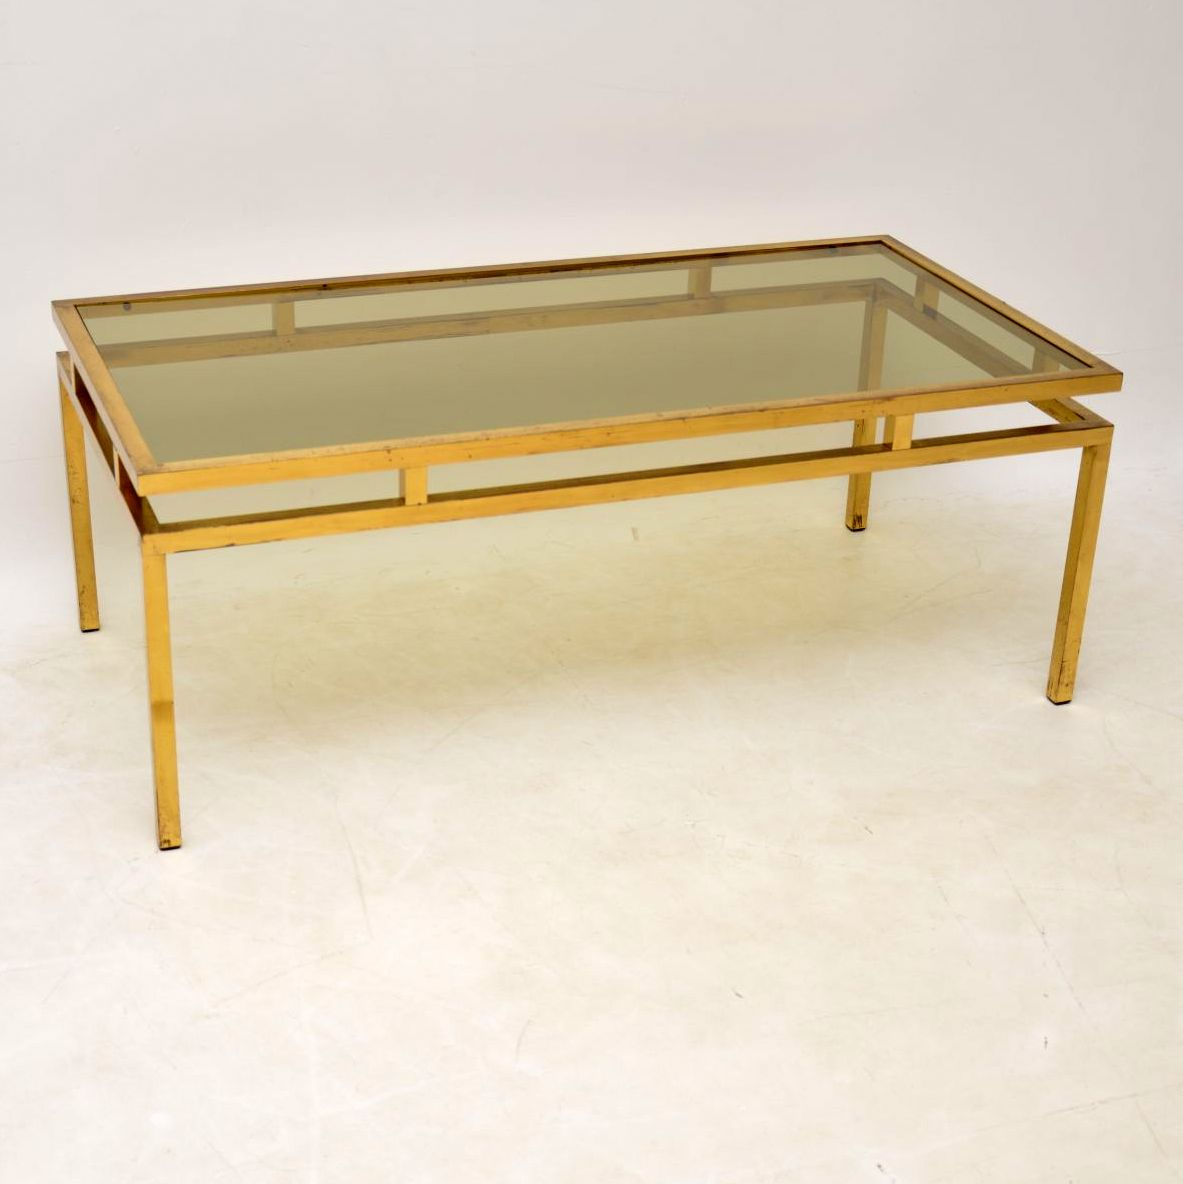 1960 S Vintage French Brass Glass Coffee Table Retrospective Interiors Retro Furniture Vintage Mid Century Furniture Vintage Danish Modern Furniture Antique Furniture London